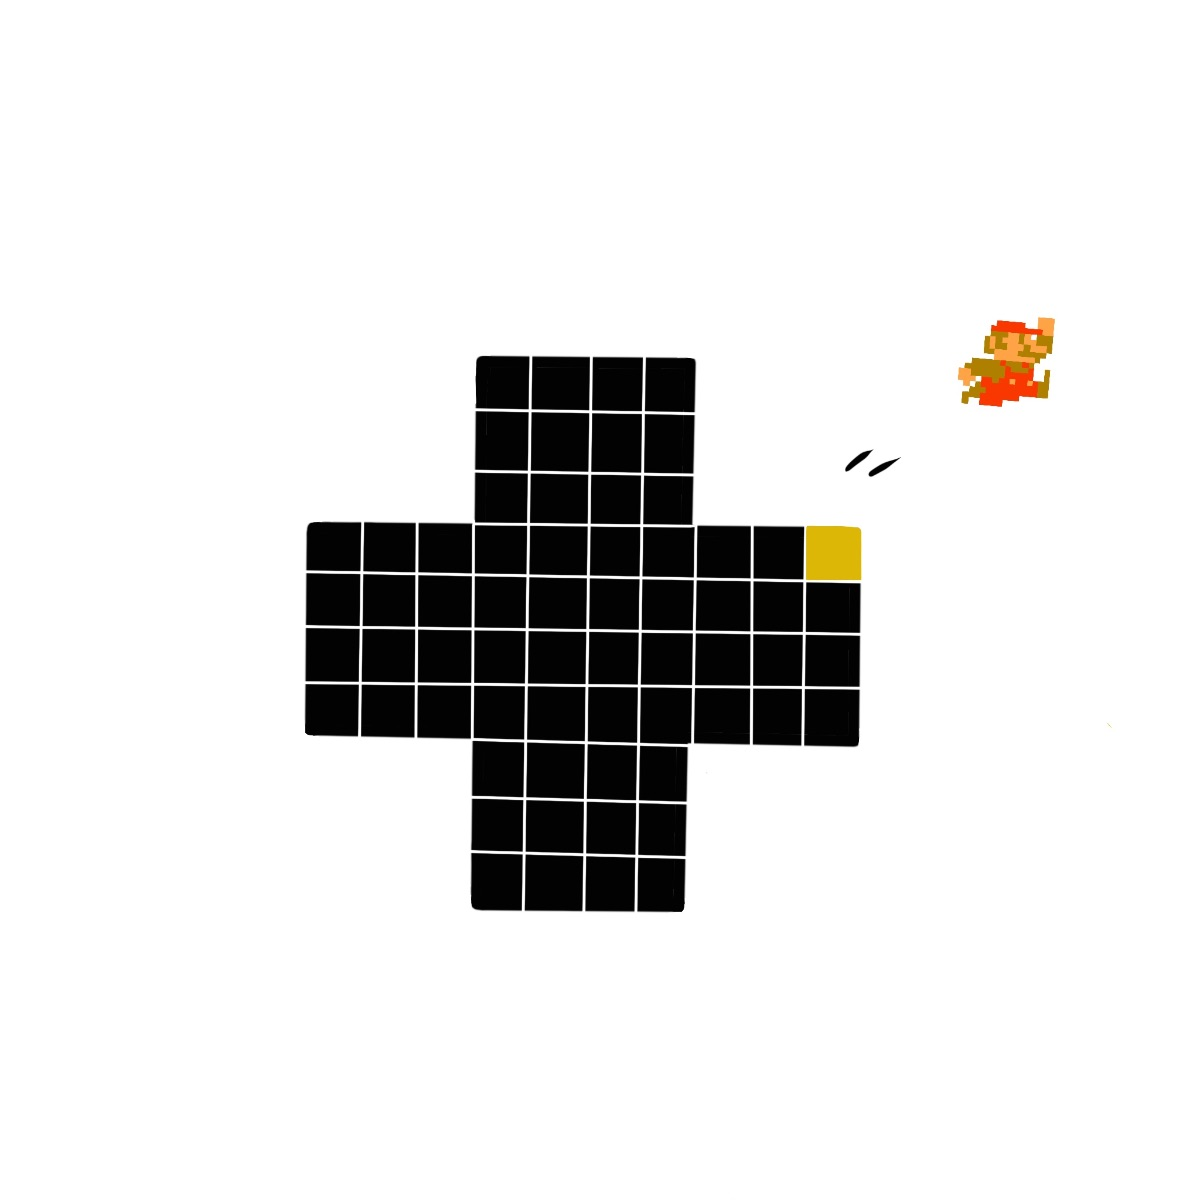 8-bit Mario jumping of a D-pad that looks like logo of 99% Invisible.